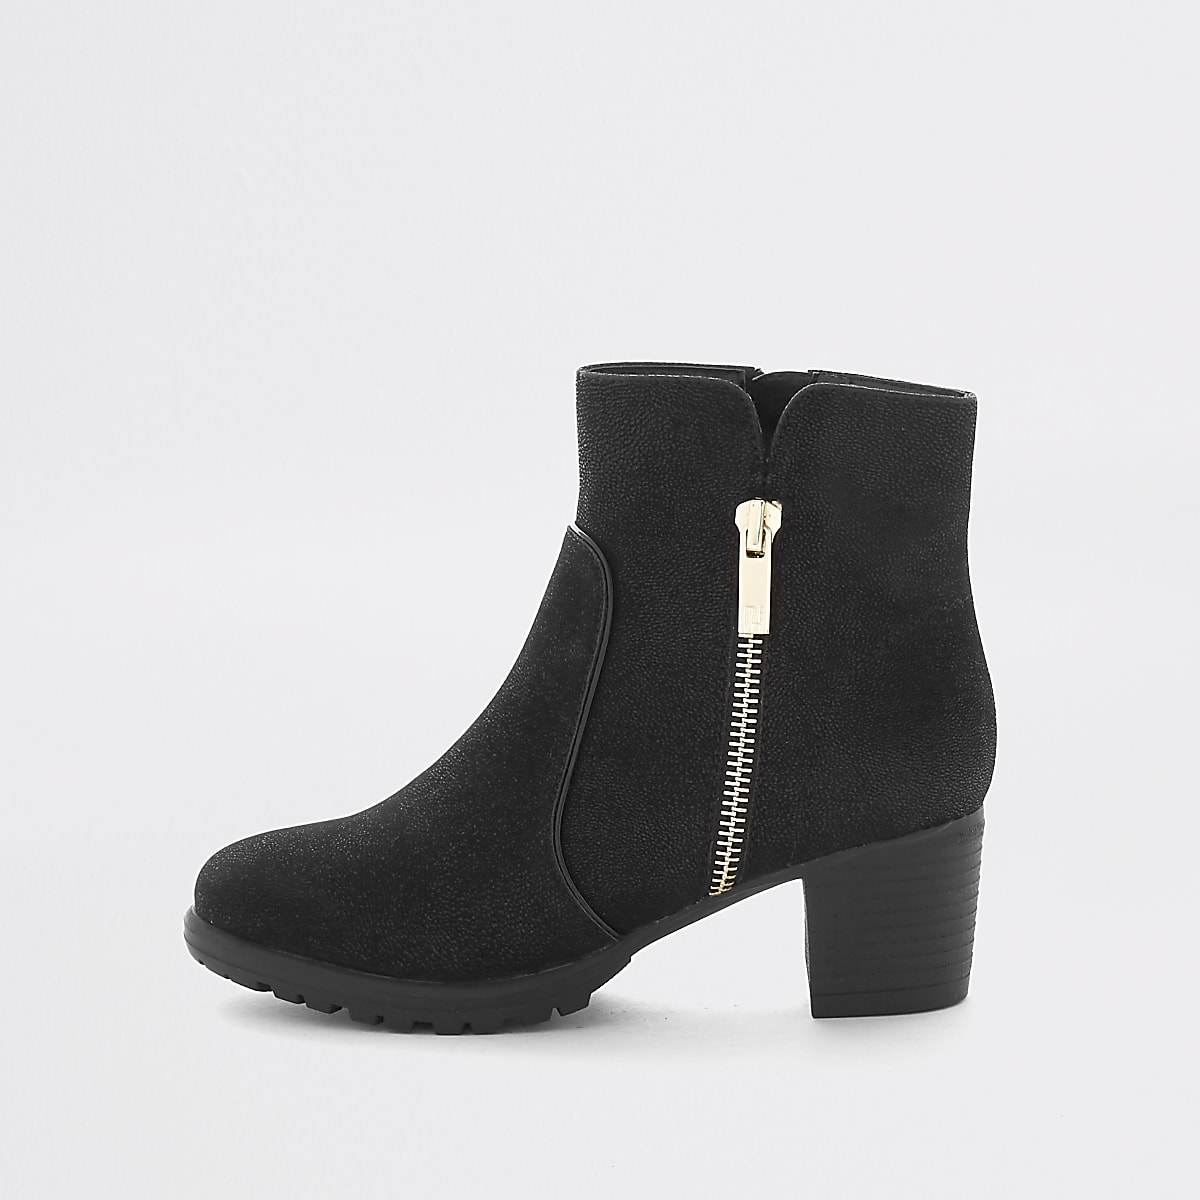 c975ed99b03 Girls black zip detail heeled boots